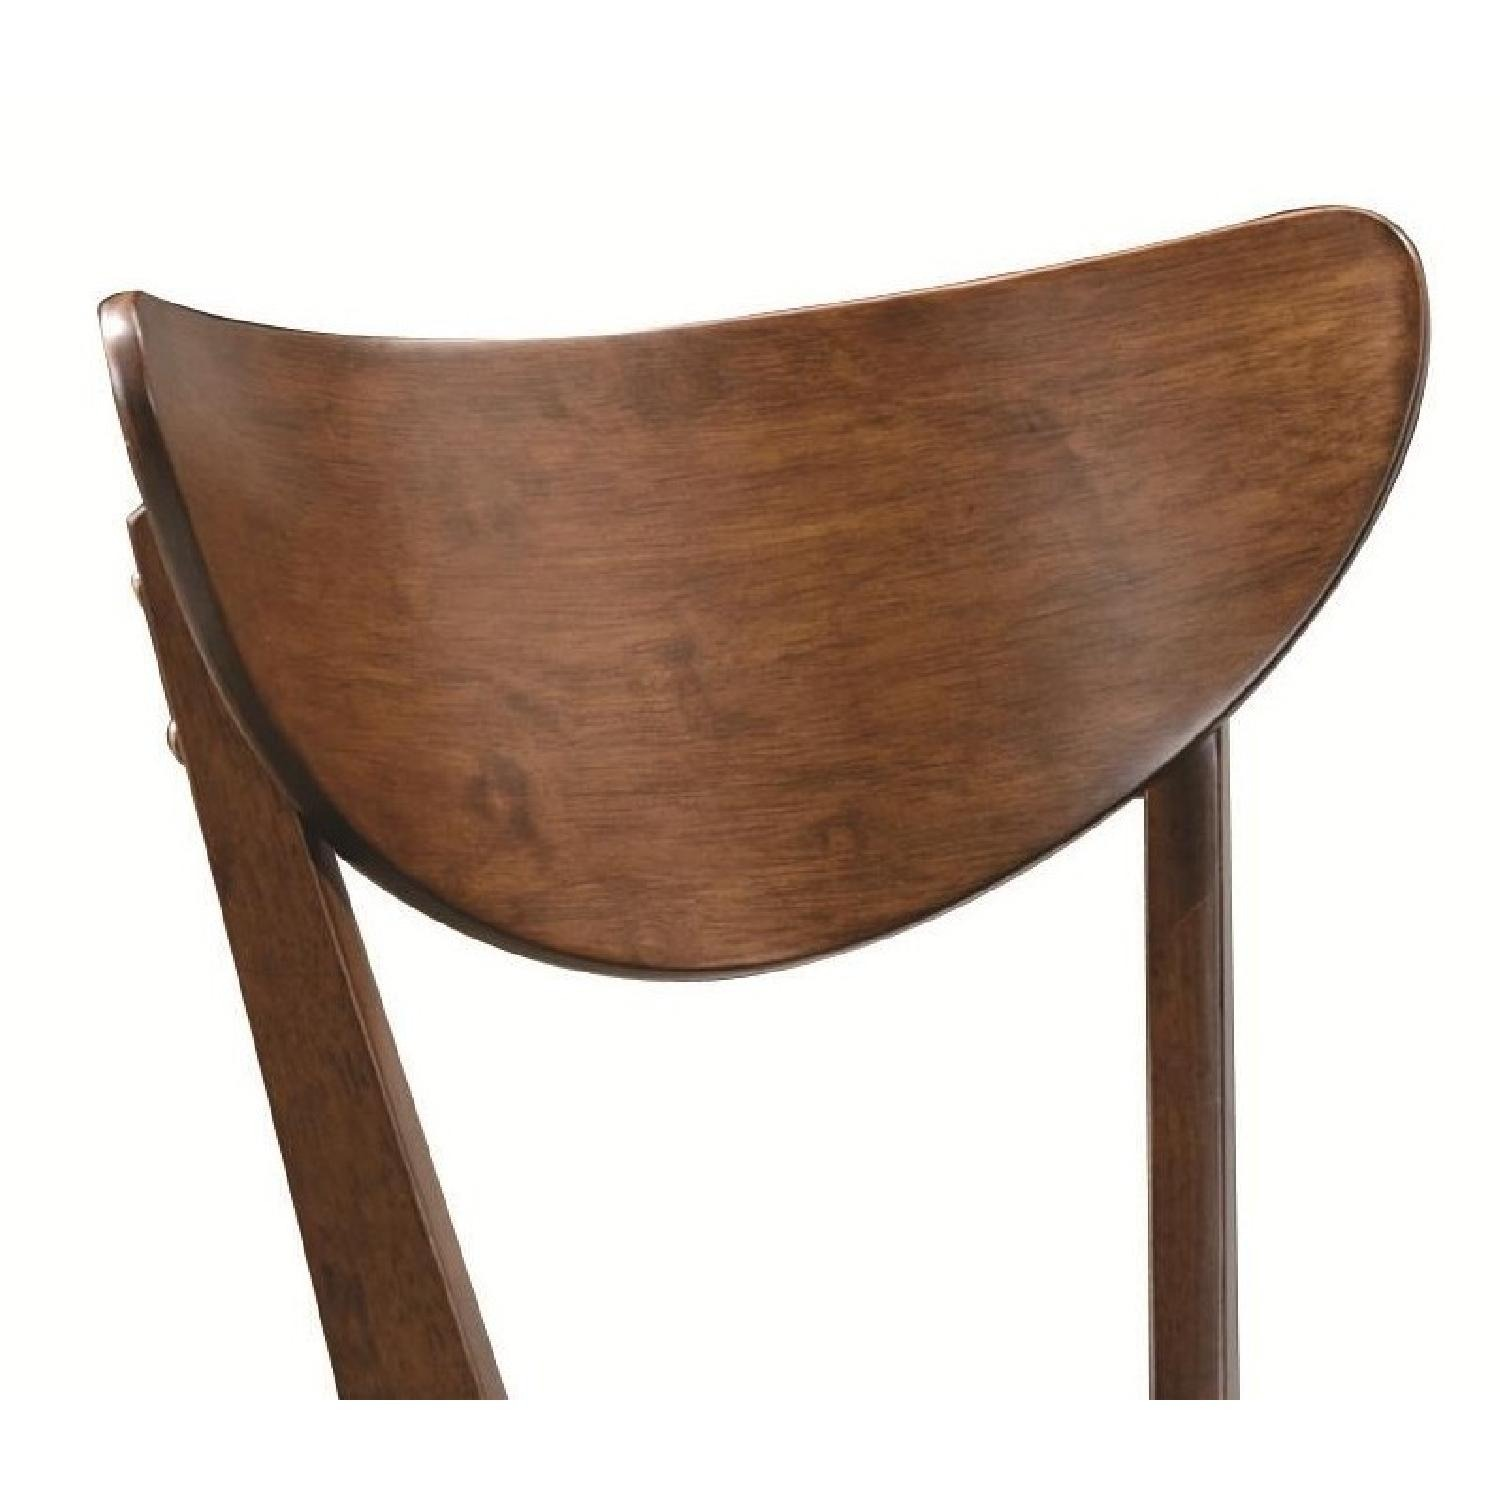 Mid-Century Retro  Dining Chairs in Walnut Finish - image-3